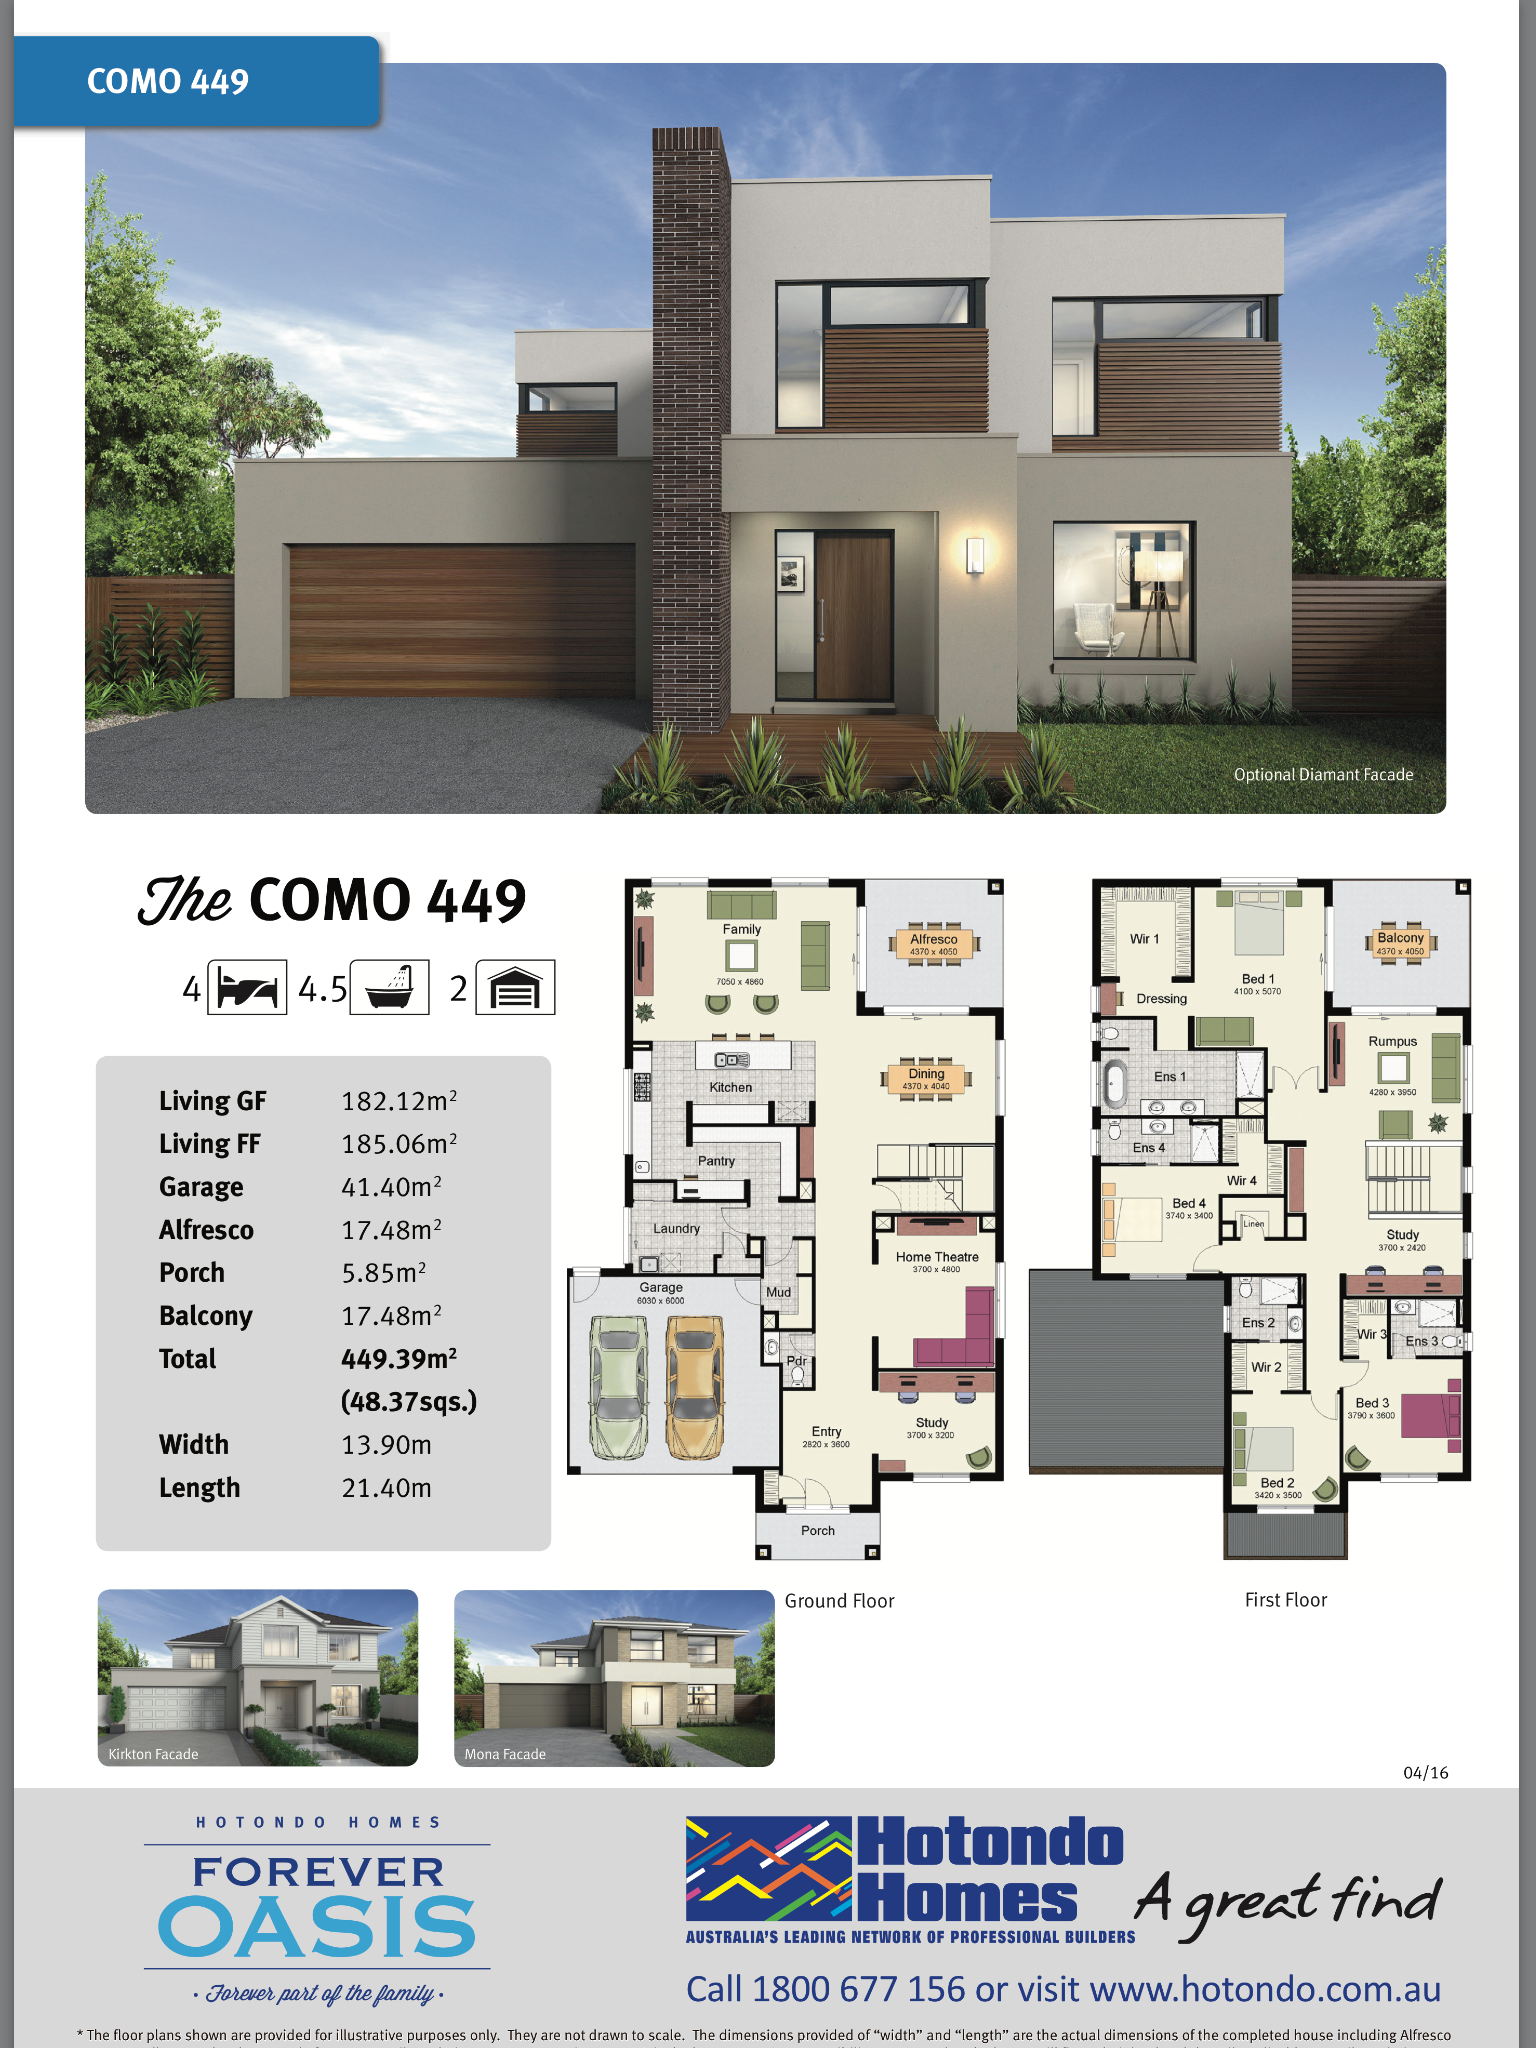 Perfect Very Nice Plan Maison Maison Dispositions De